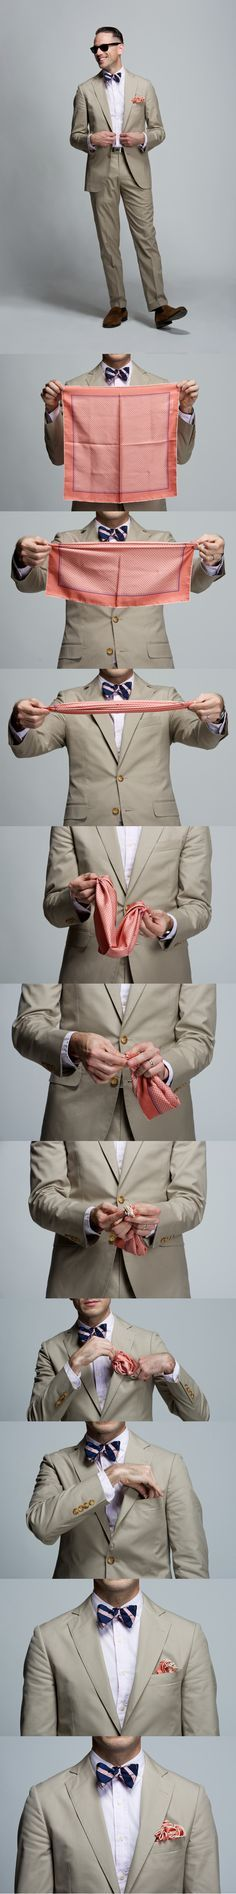 We're off to the races with this Derby inspired look! Collared Greens Bow Ties -http://www.collaredgreens.com/categories/men/mens-bow-ties.html Pocket Squares - http://www.collaredgreens.com/categories/men/pocket-squares.html